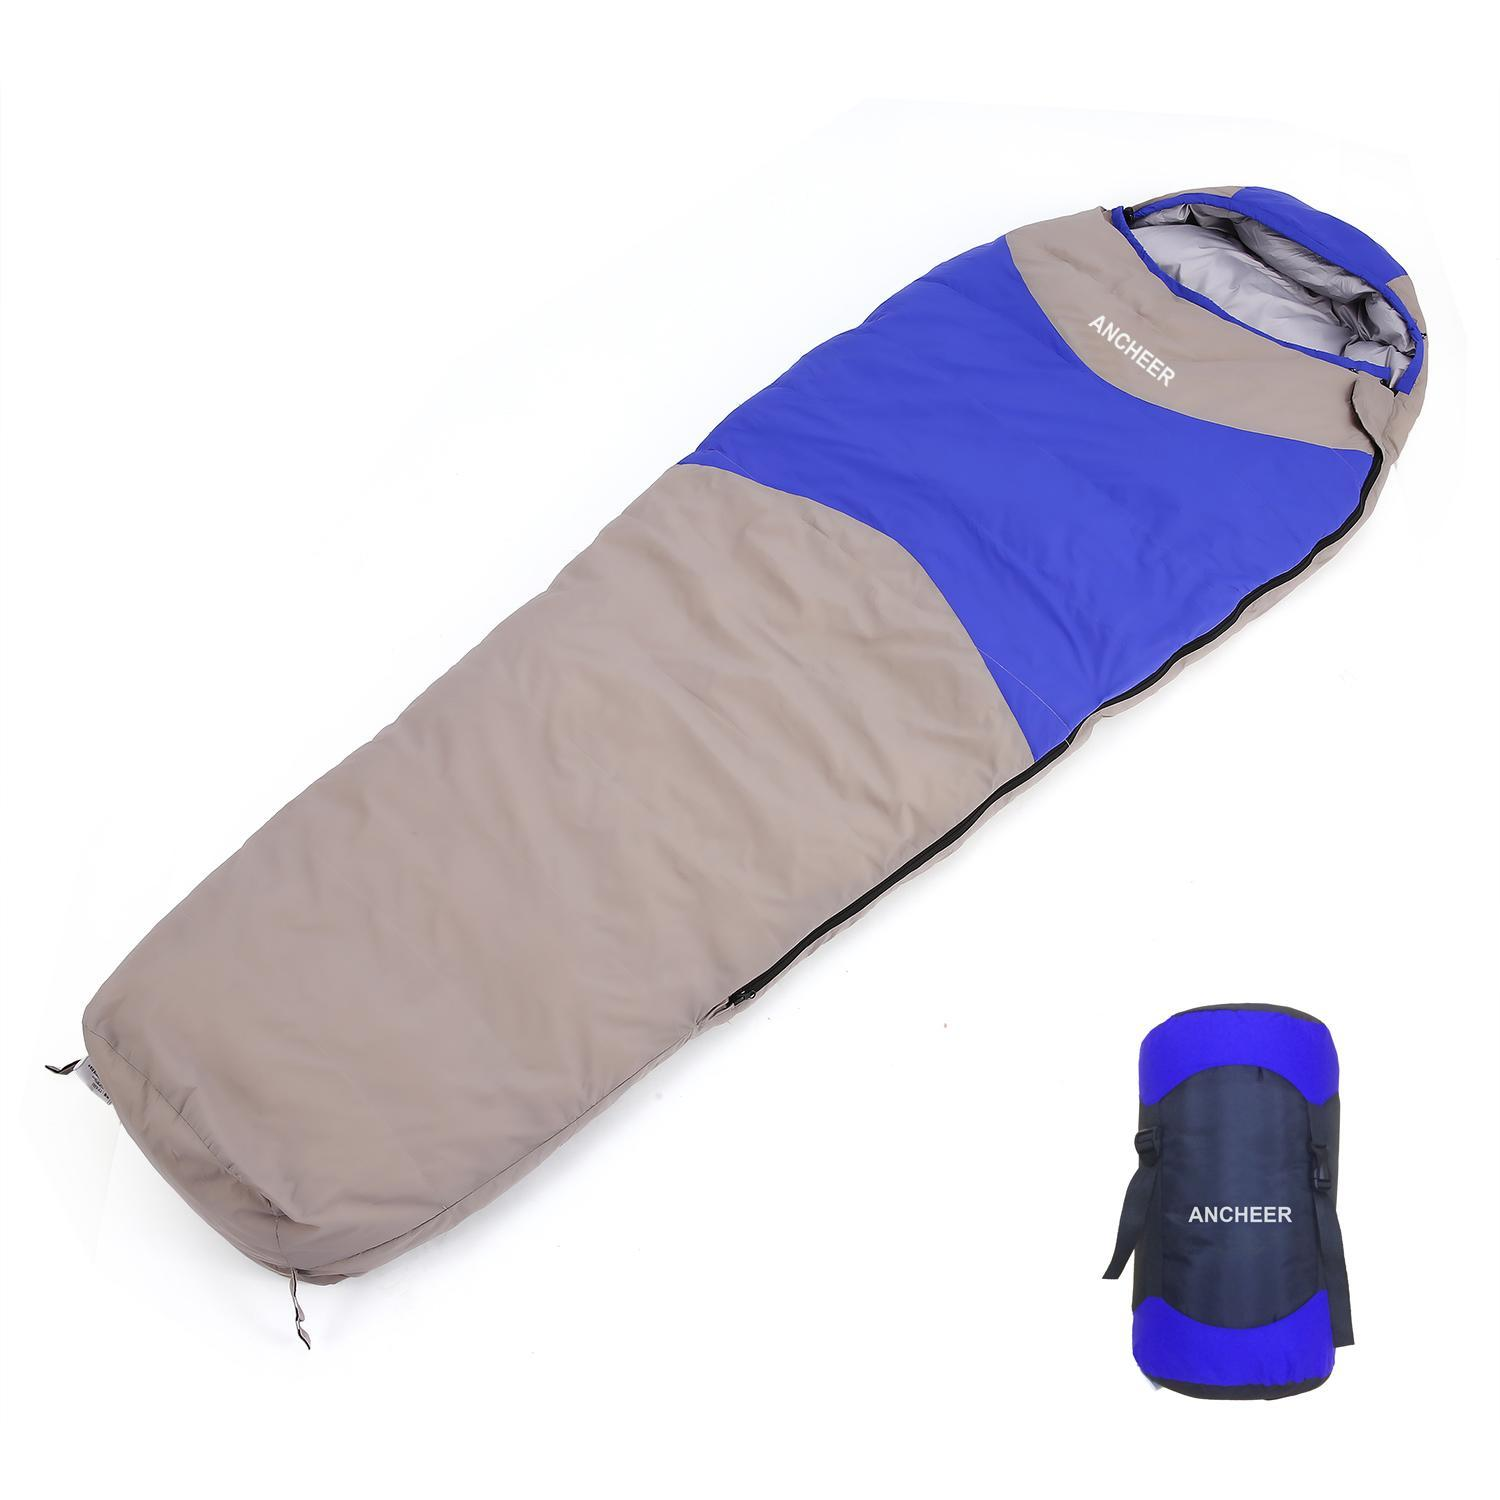 Ancheer Ultralight Mummy Down Sleeping Bag Winter for Camping Hiking Travel CCGE